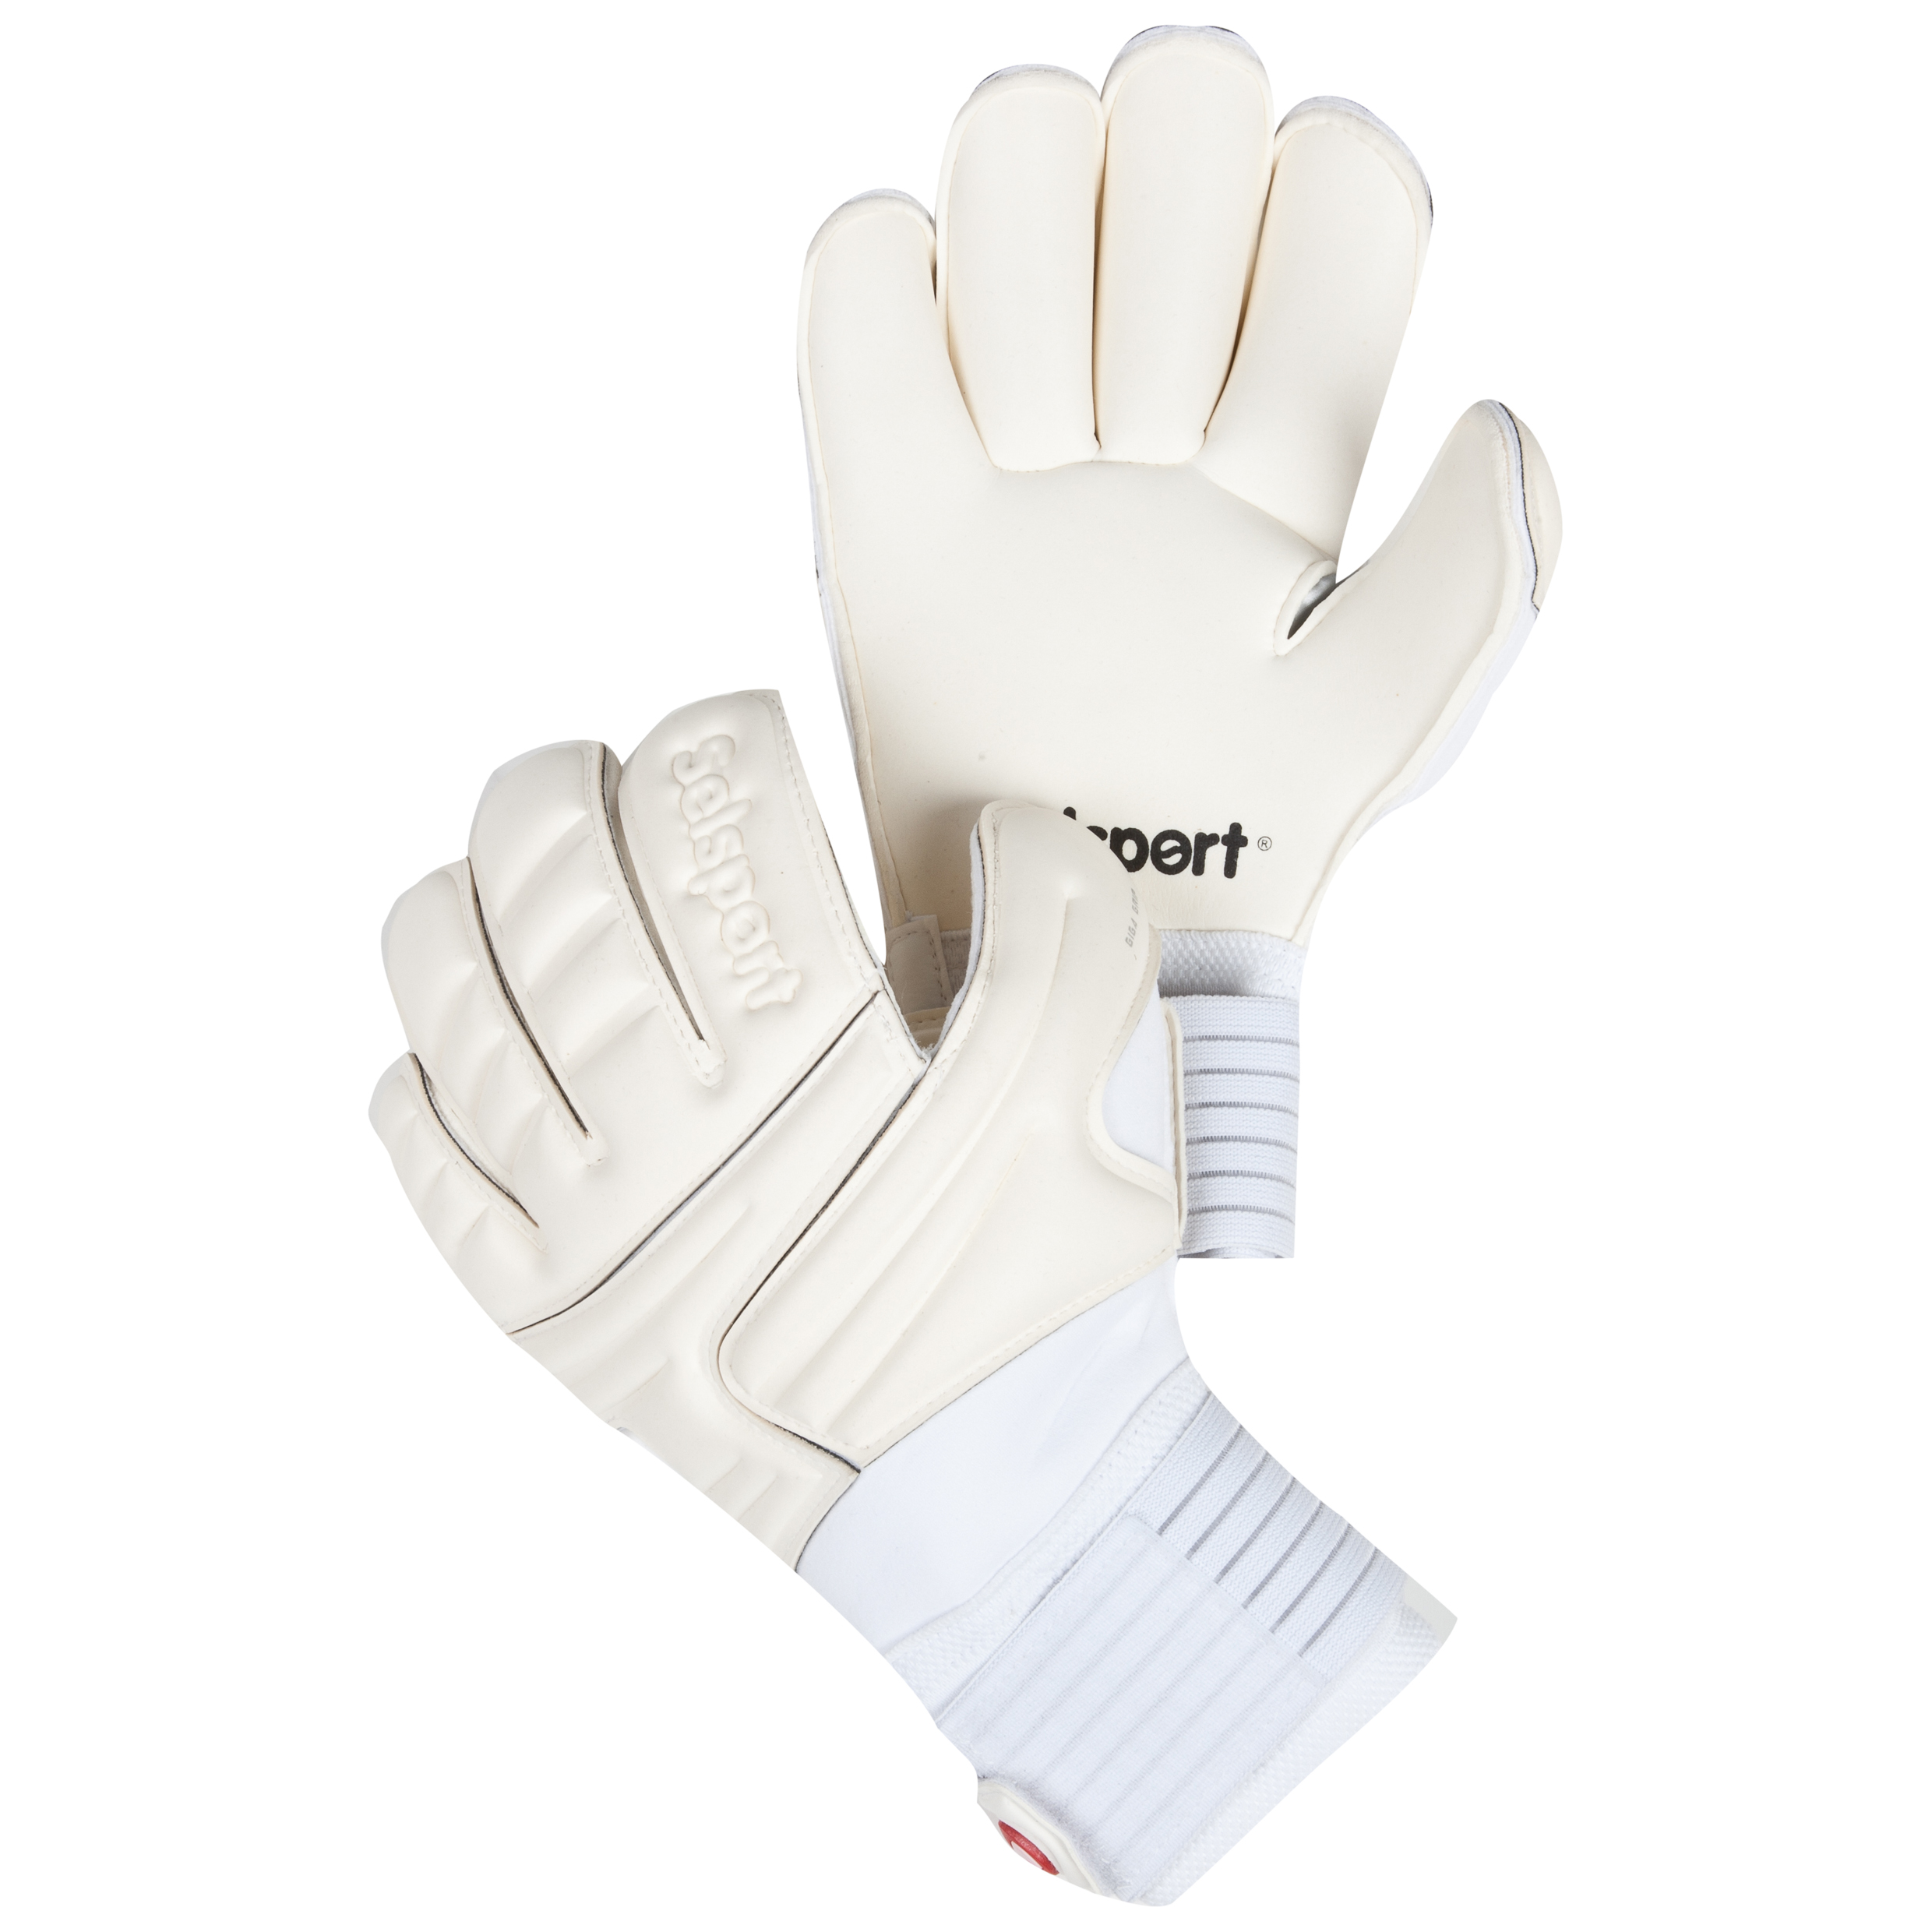 Selsport Extreme 2 Goalkeeper Gloves - White